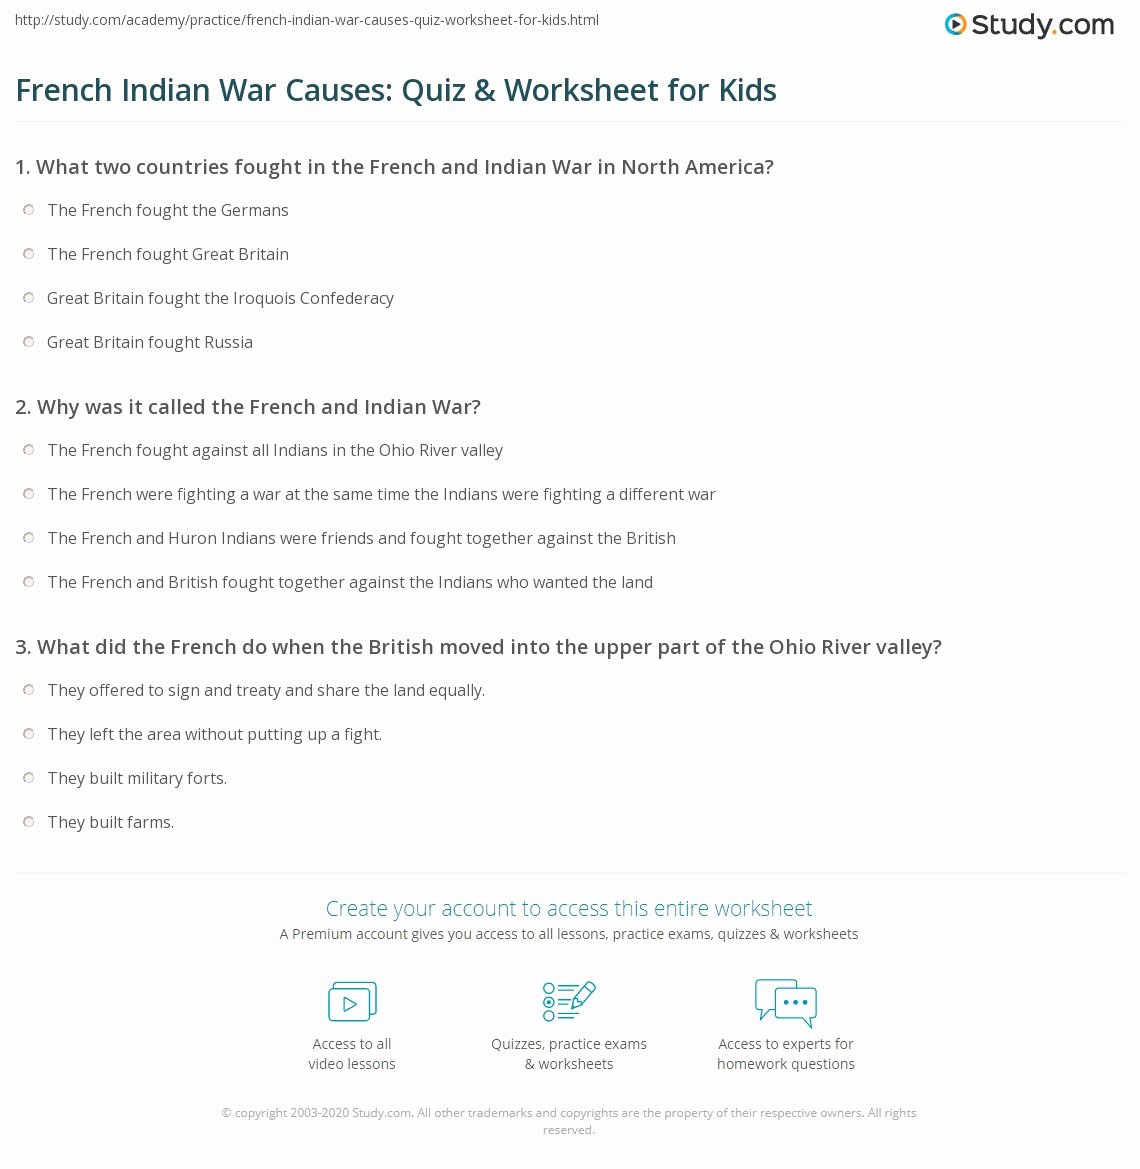 French and Indian War Worksheet Free French Indian War Causes Quiz & Worksheet for Kids